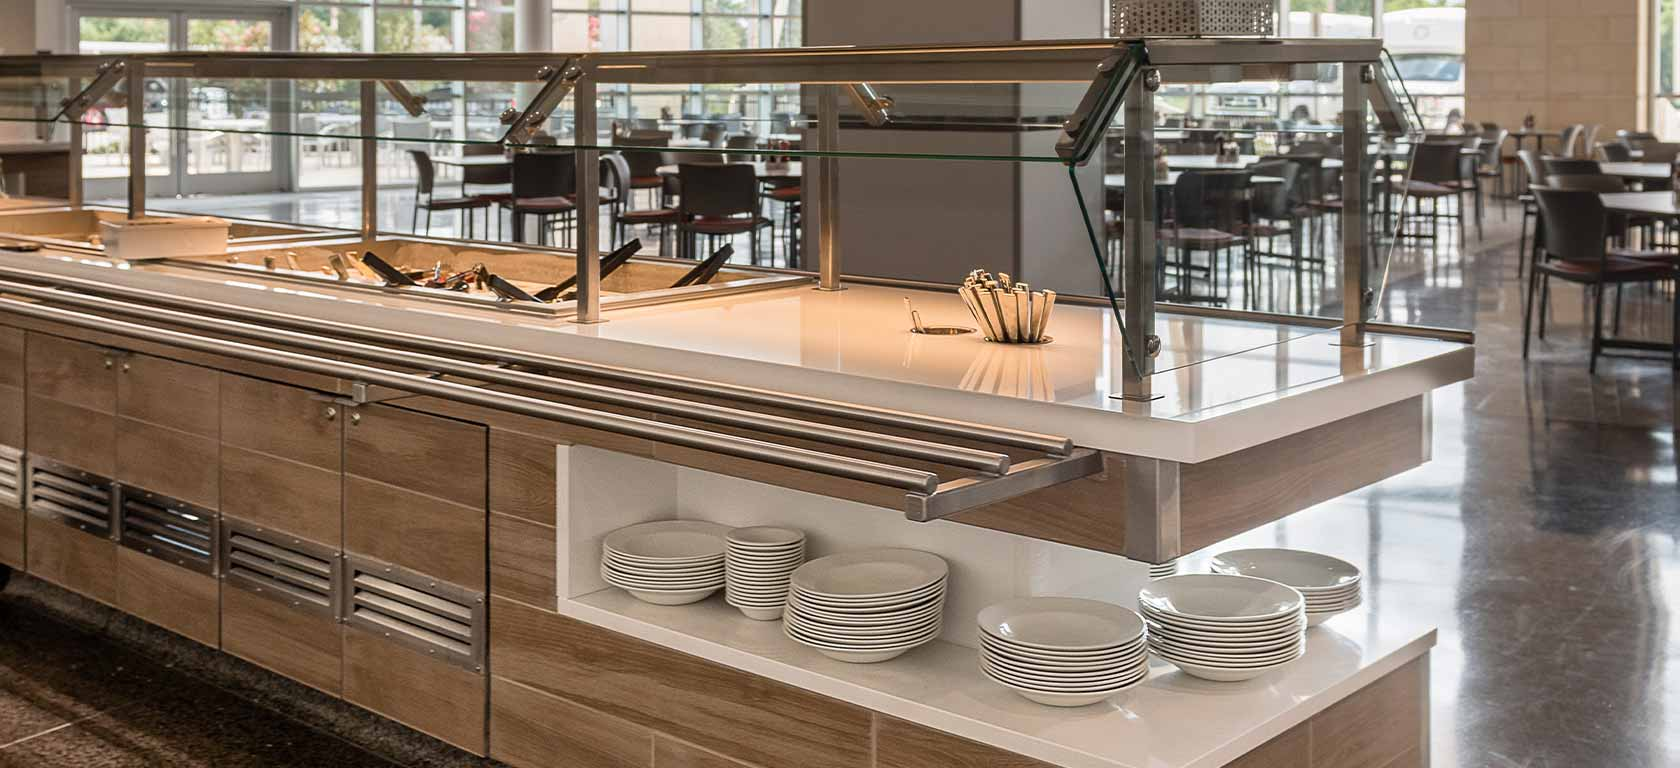 Close-up shot of earth-toned buffet food display with white trim.